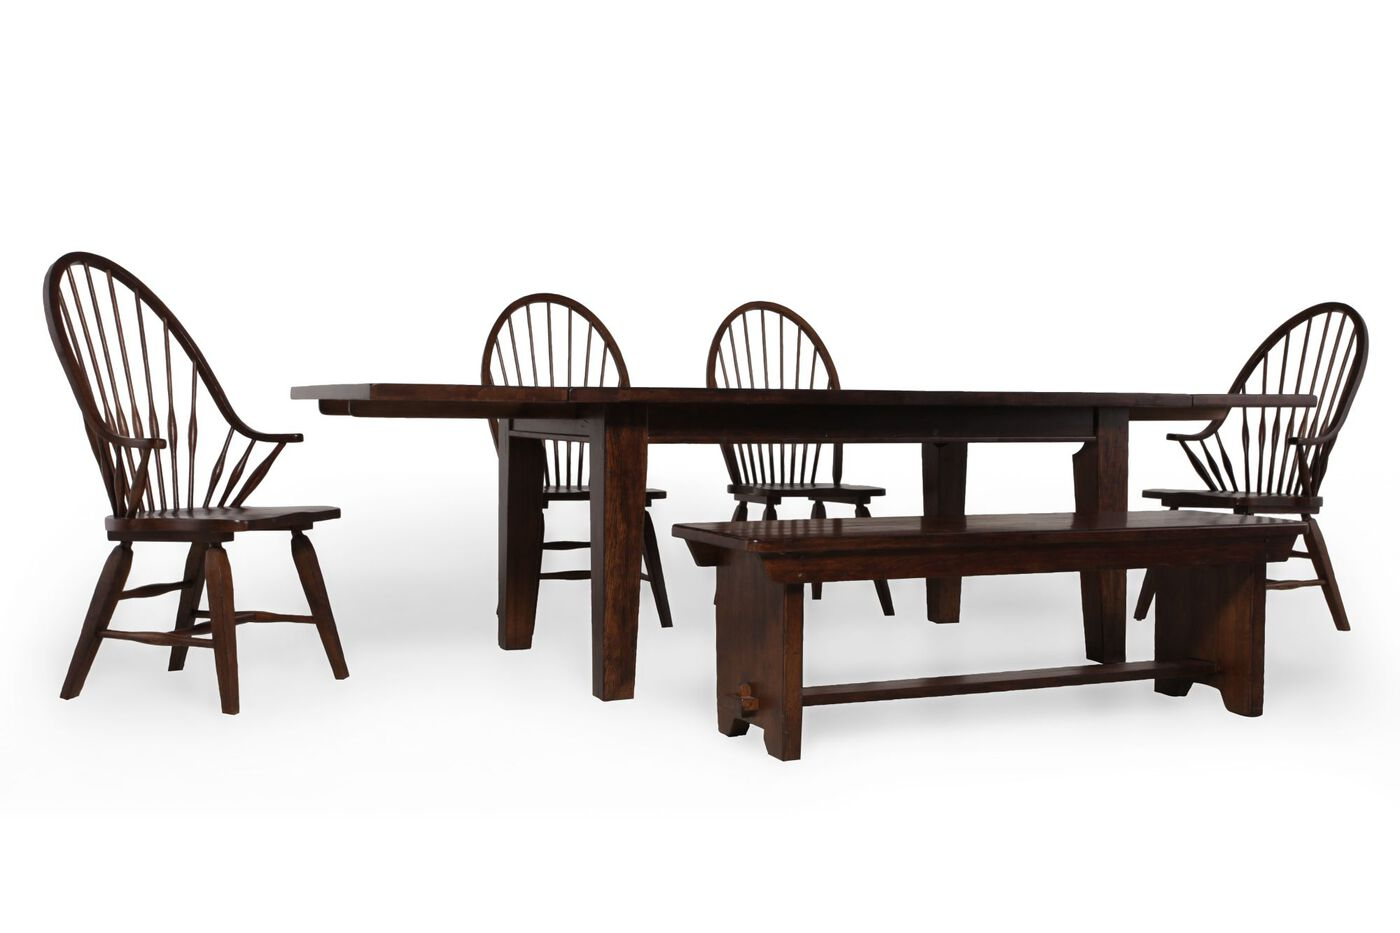 Broyhill attic rustic oak six piece dining set mathis for Broyhill dining room furniture